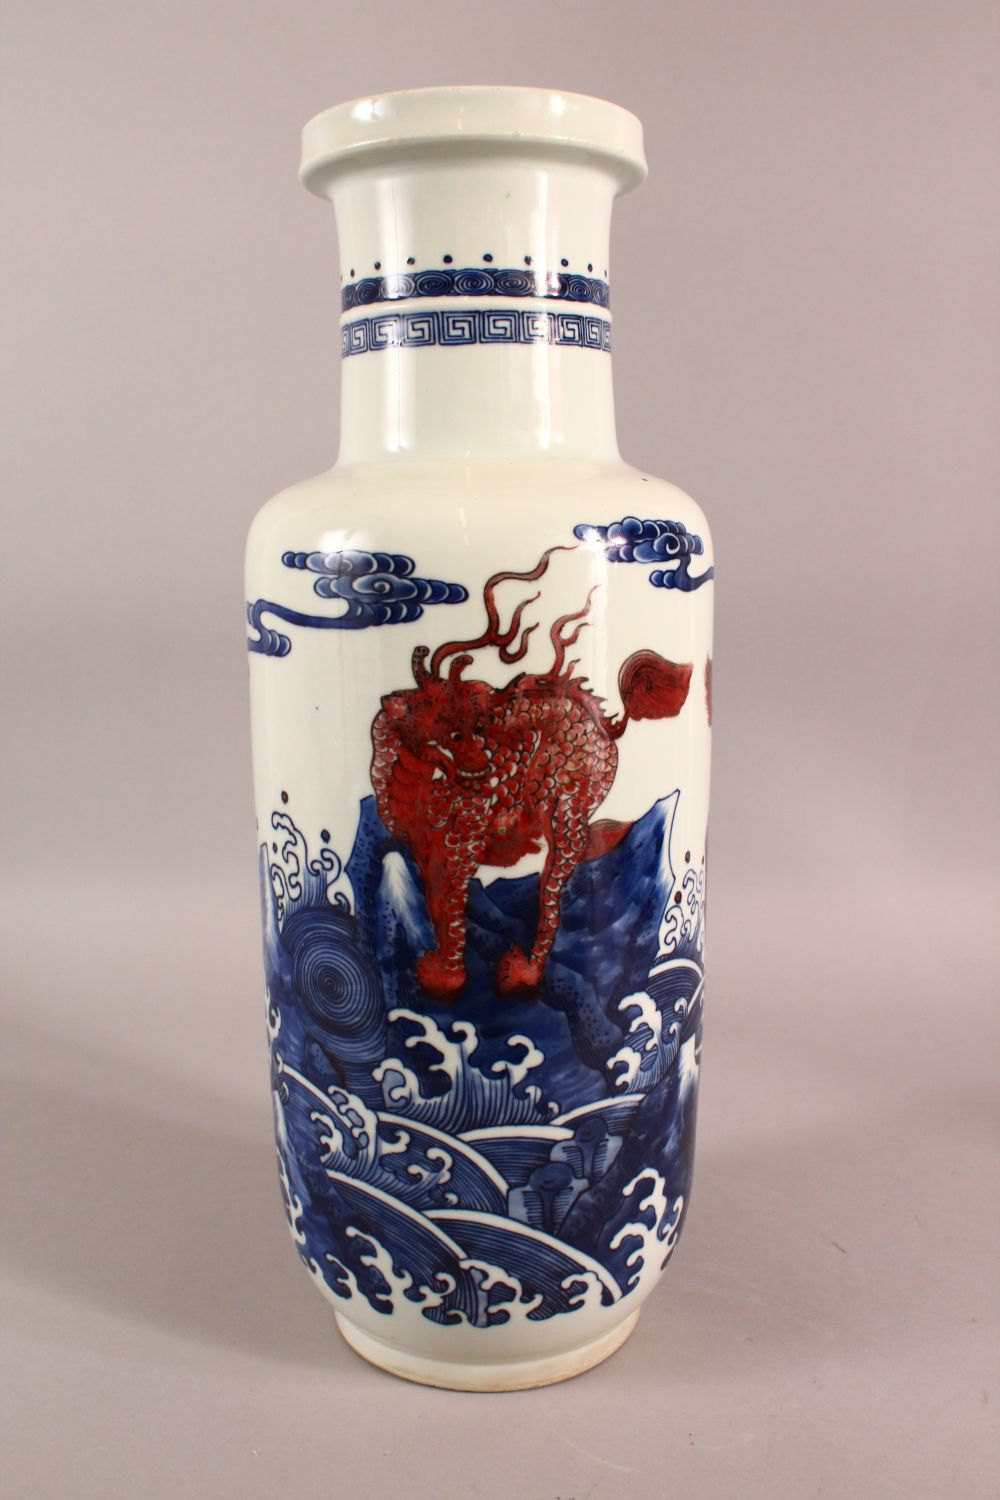 A CHINESE IRON RED, BLUE AND WHITE VASE, the body painted with mythical creatures amongst stylised - Image 3 of 7